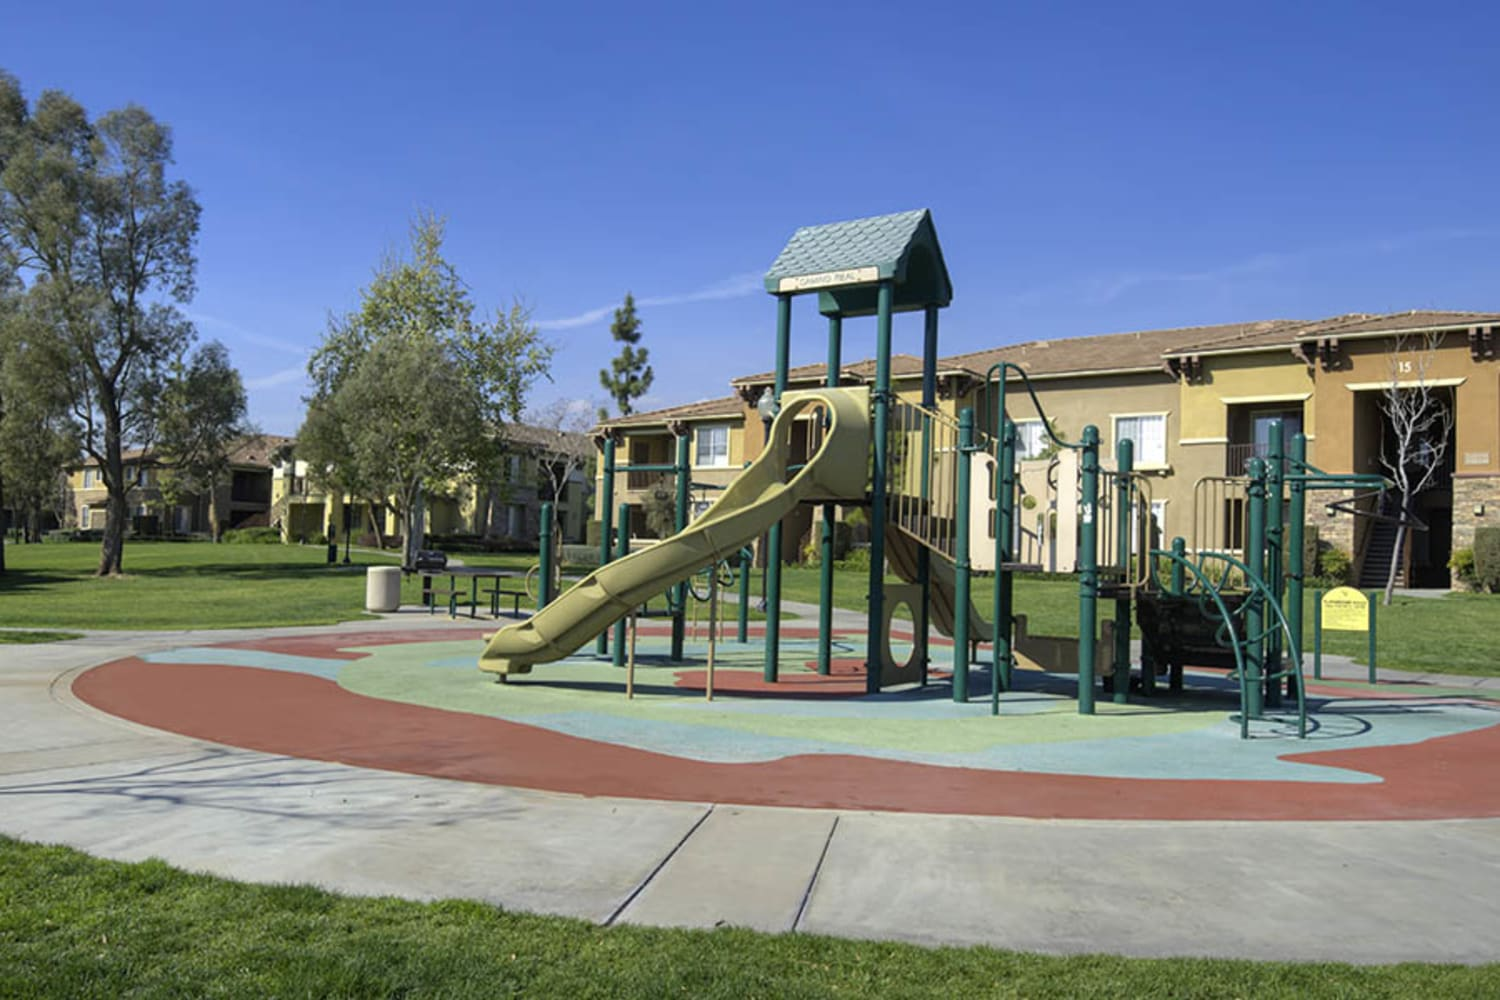 Camino Real offers a playground and play area for children in Rancho Cucamonga, California